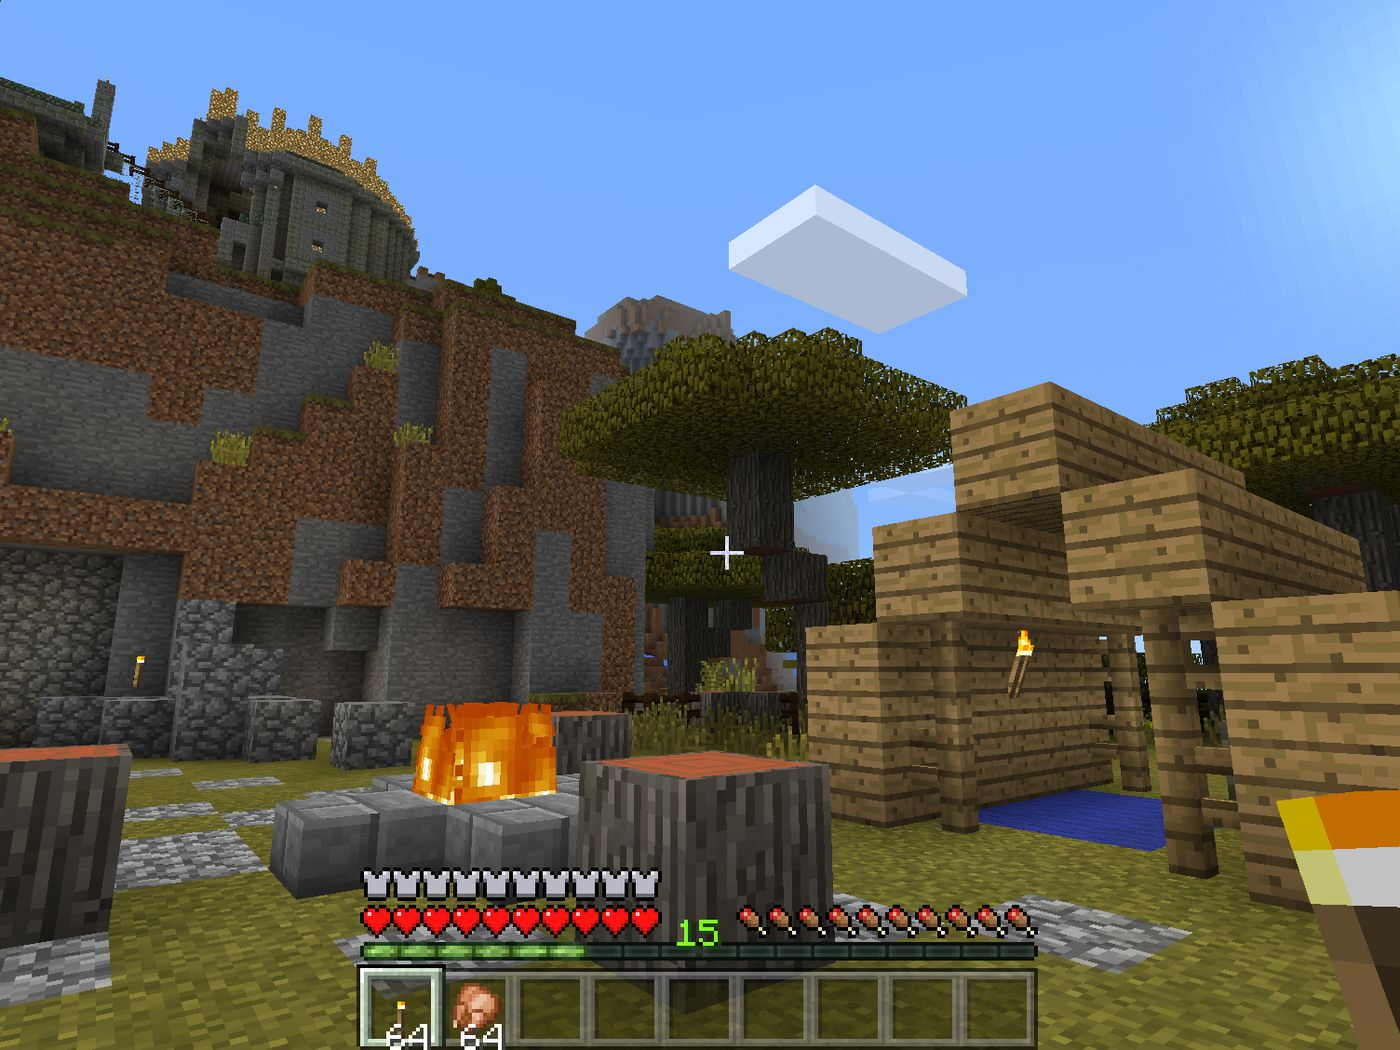 Minecraft for the Oculus Rift shows the promise and perils of